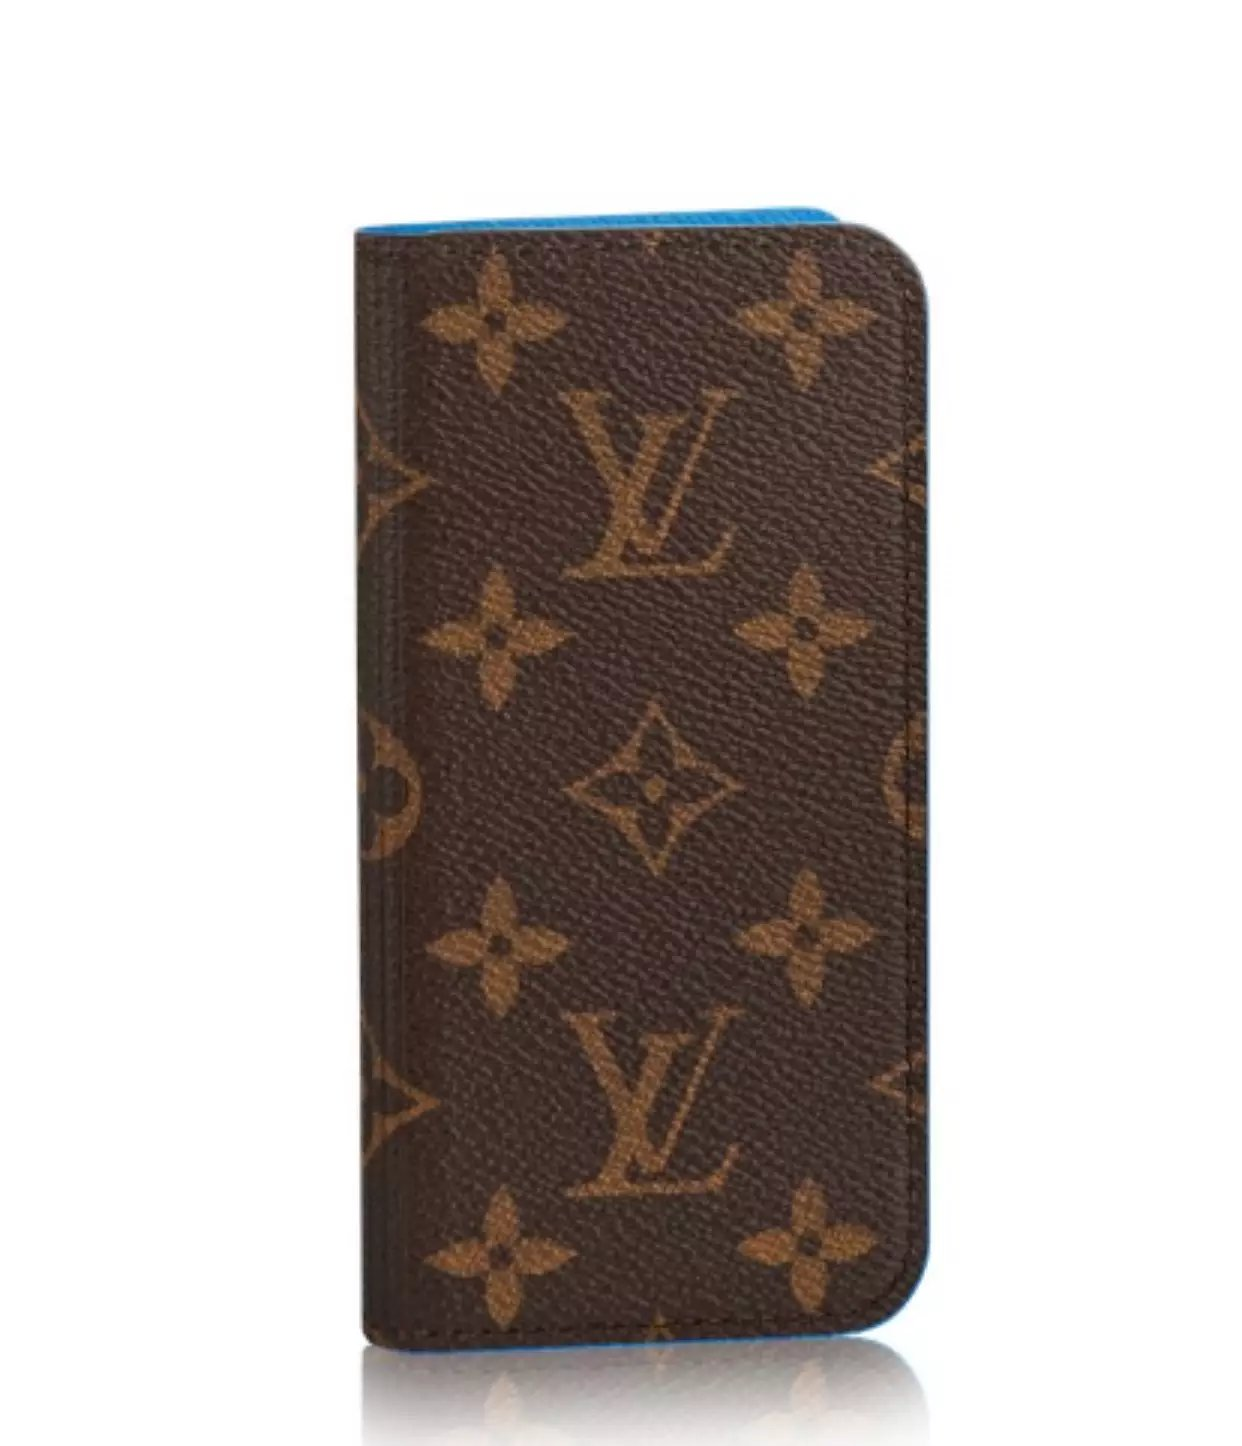 iphone hülle leder iphone hülle erstellen Louis Vuitton iphone7 hülle iphone handy hülle handy silikonhülle carbon ca7 iphone 7 neues iphone apple iphone 7 hülle 7lber gestalten günstig transparente hülle iphone 7